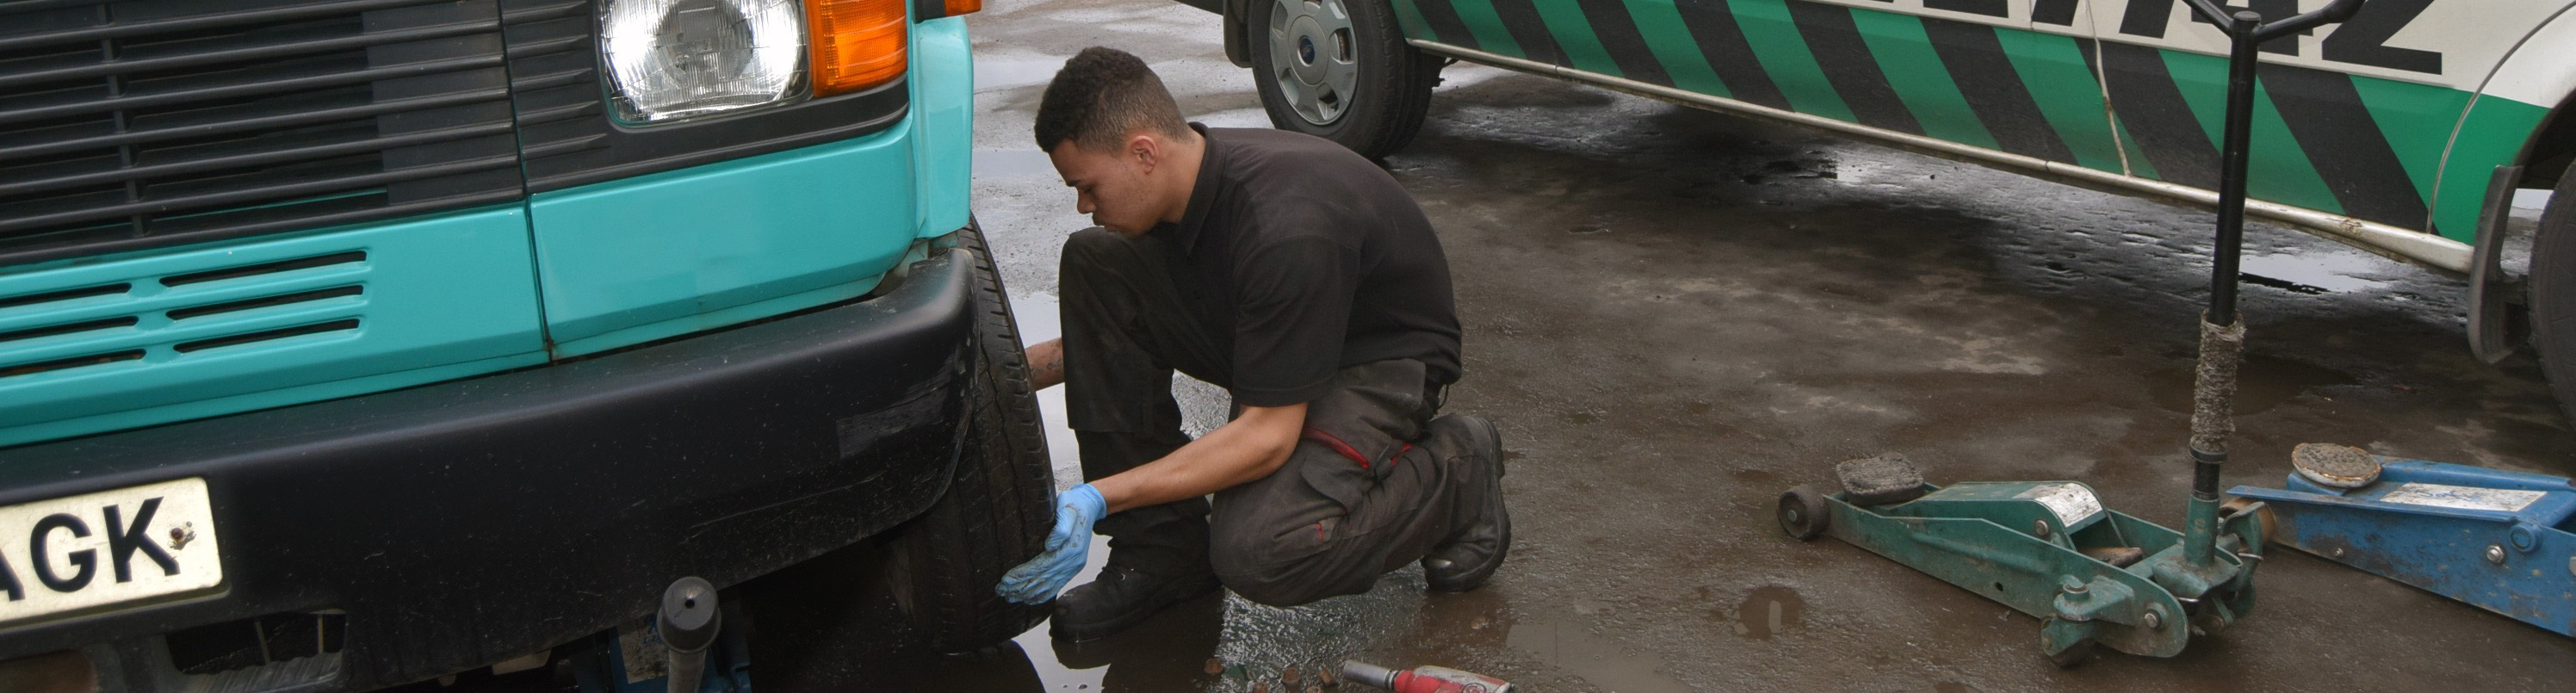 A FRIENDLY PERSONAL SERVICE BOTH MOBILE AND AT OUR LOCATION